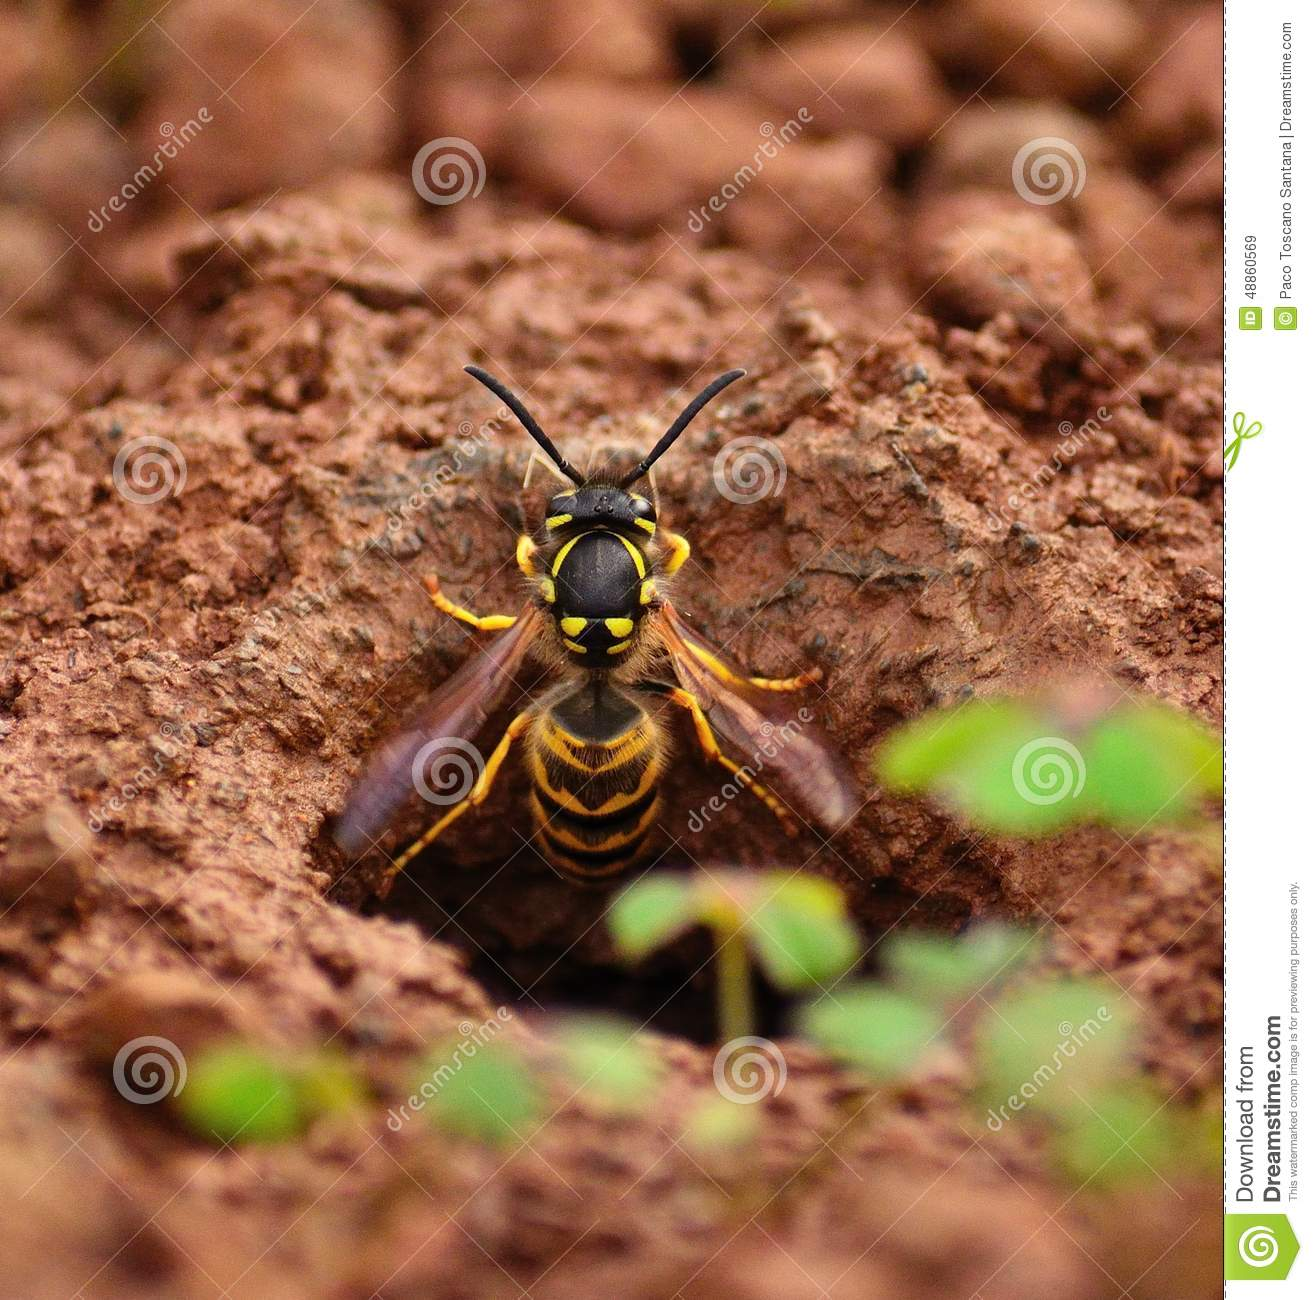 Vespula Germanica In The Exit Hole Of The Underground Nest Stock.